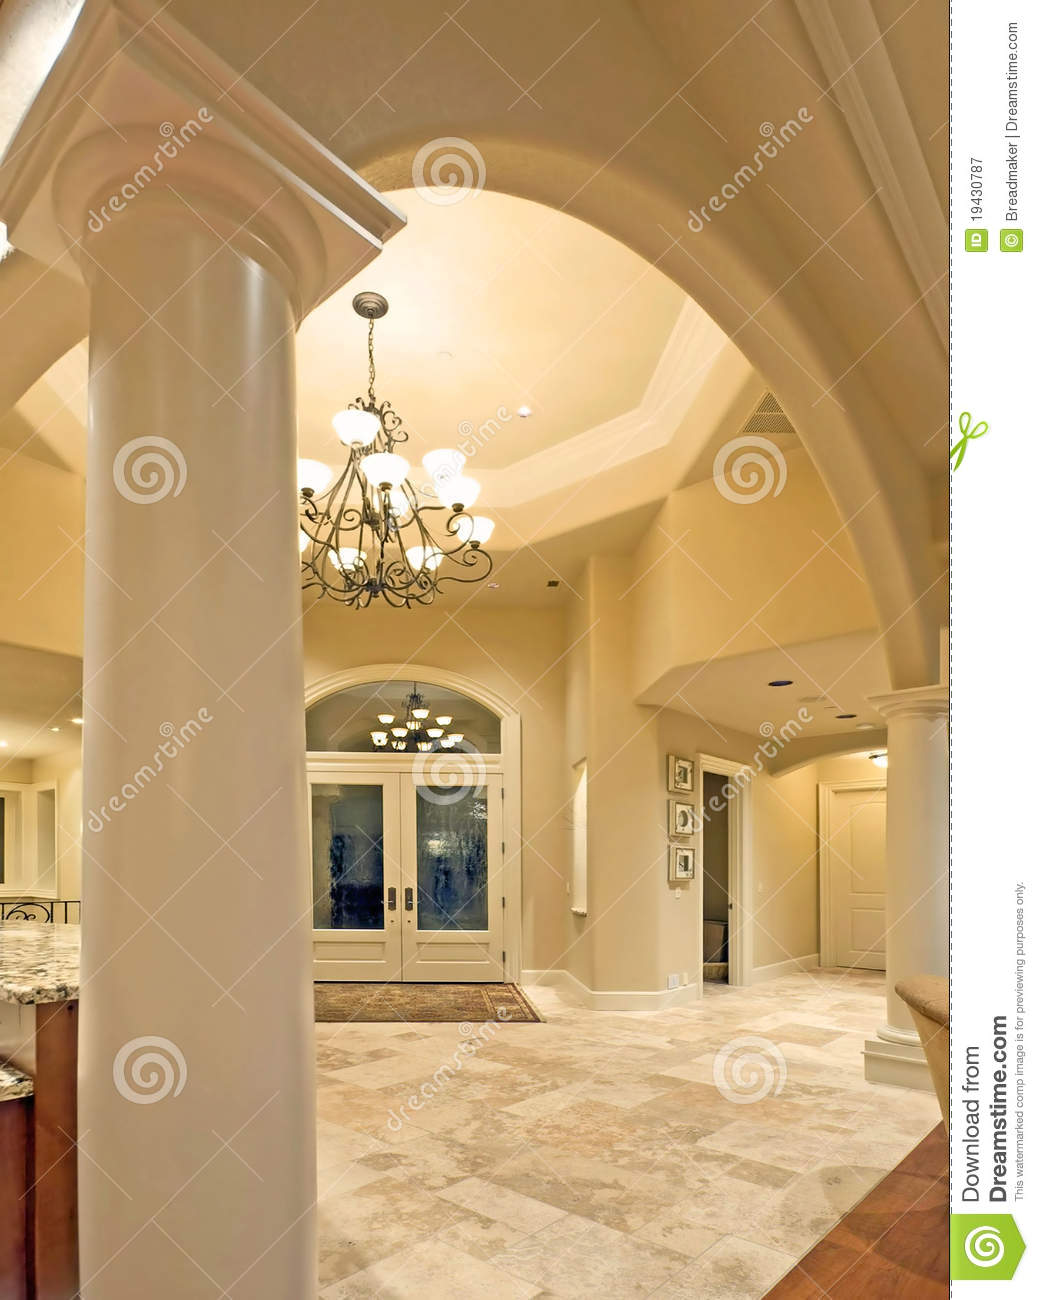 Archway And Foyer In Luxury Home Stock Image Image 19430787